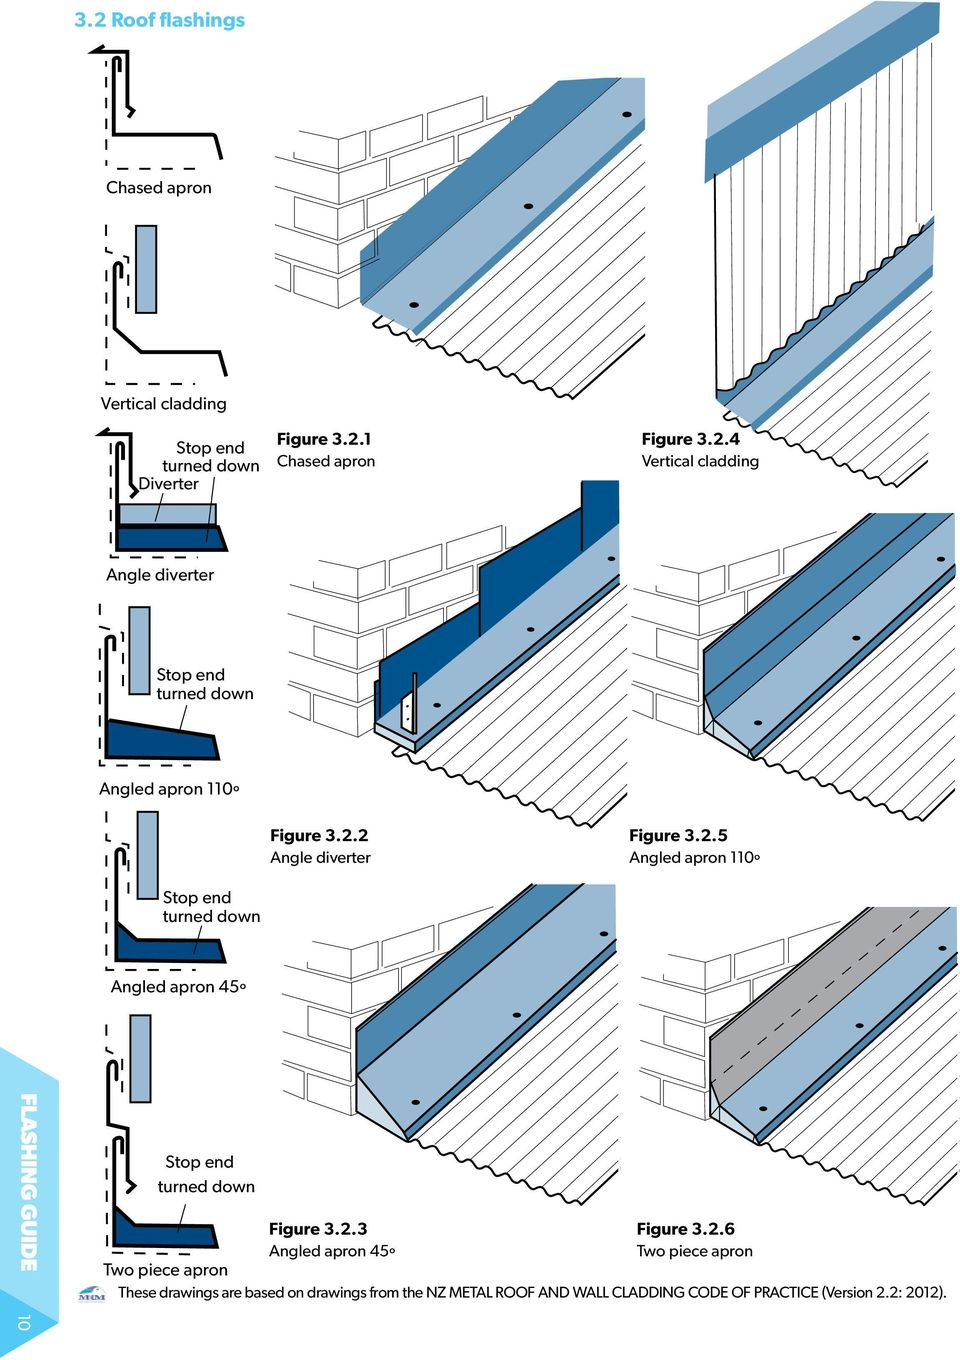 Flashing Guide For Architects And Detailing Professionals